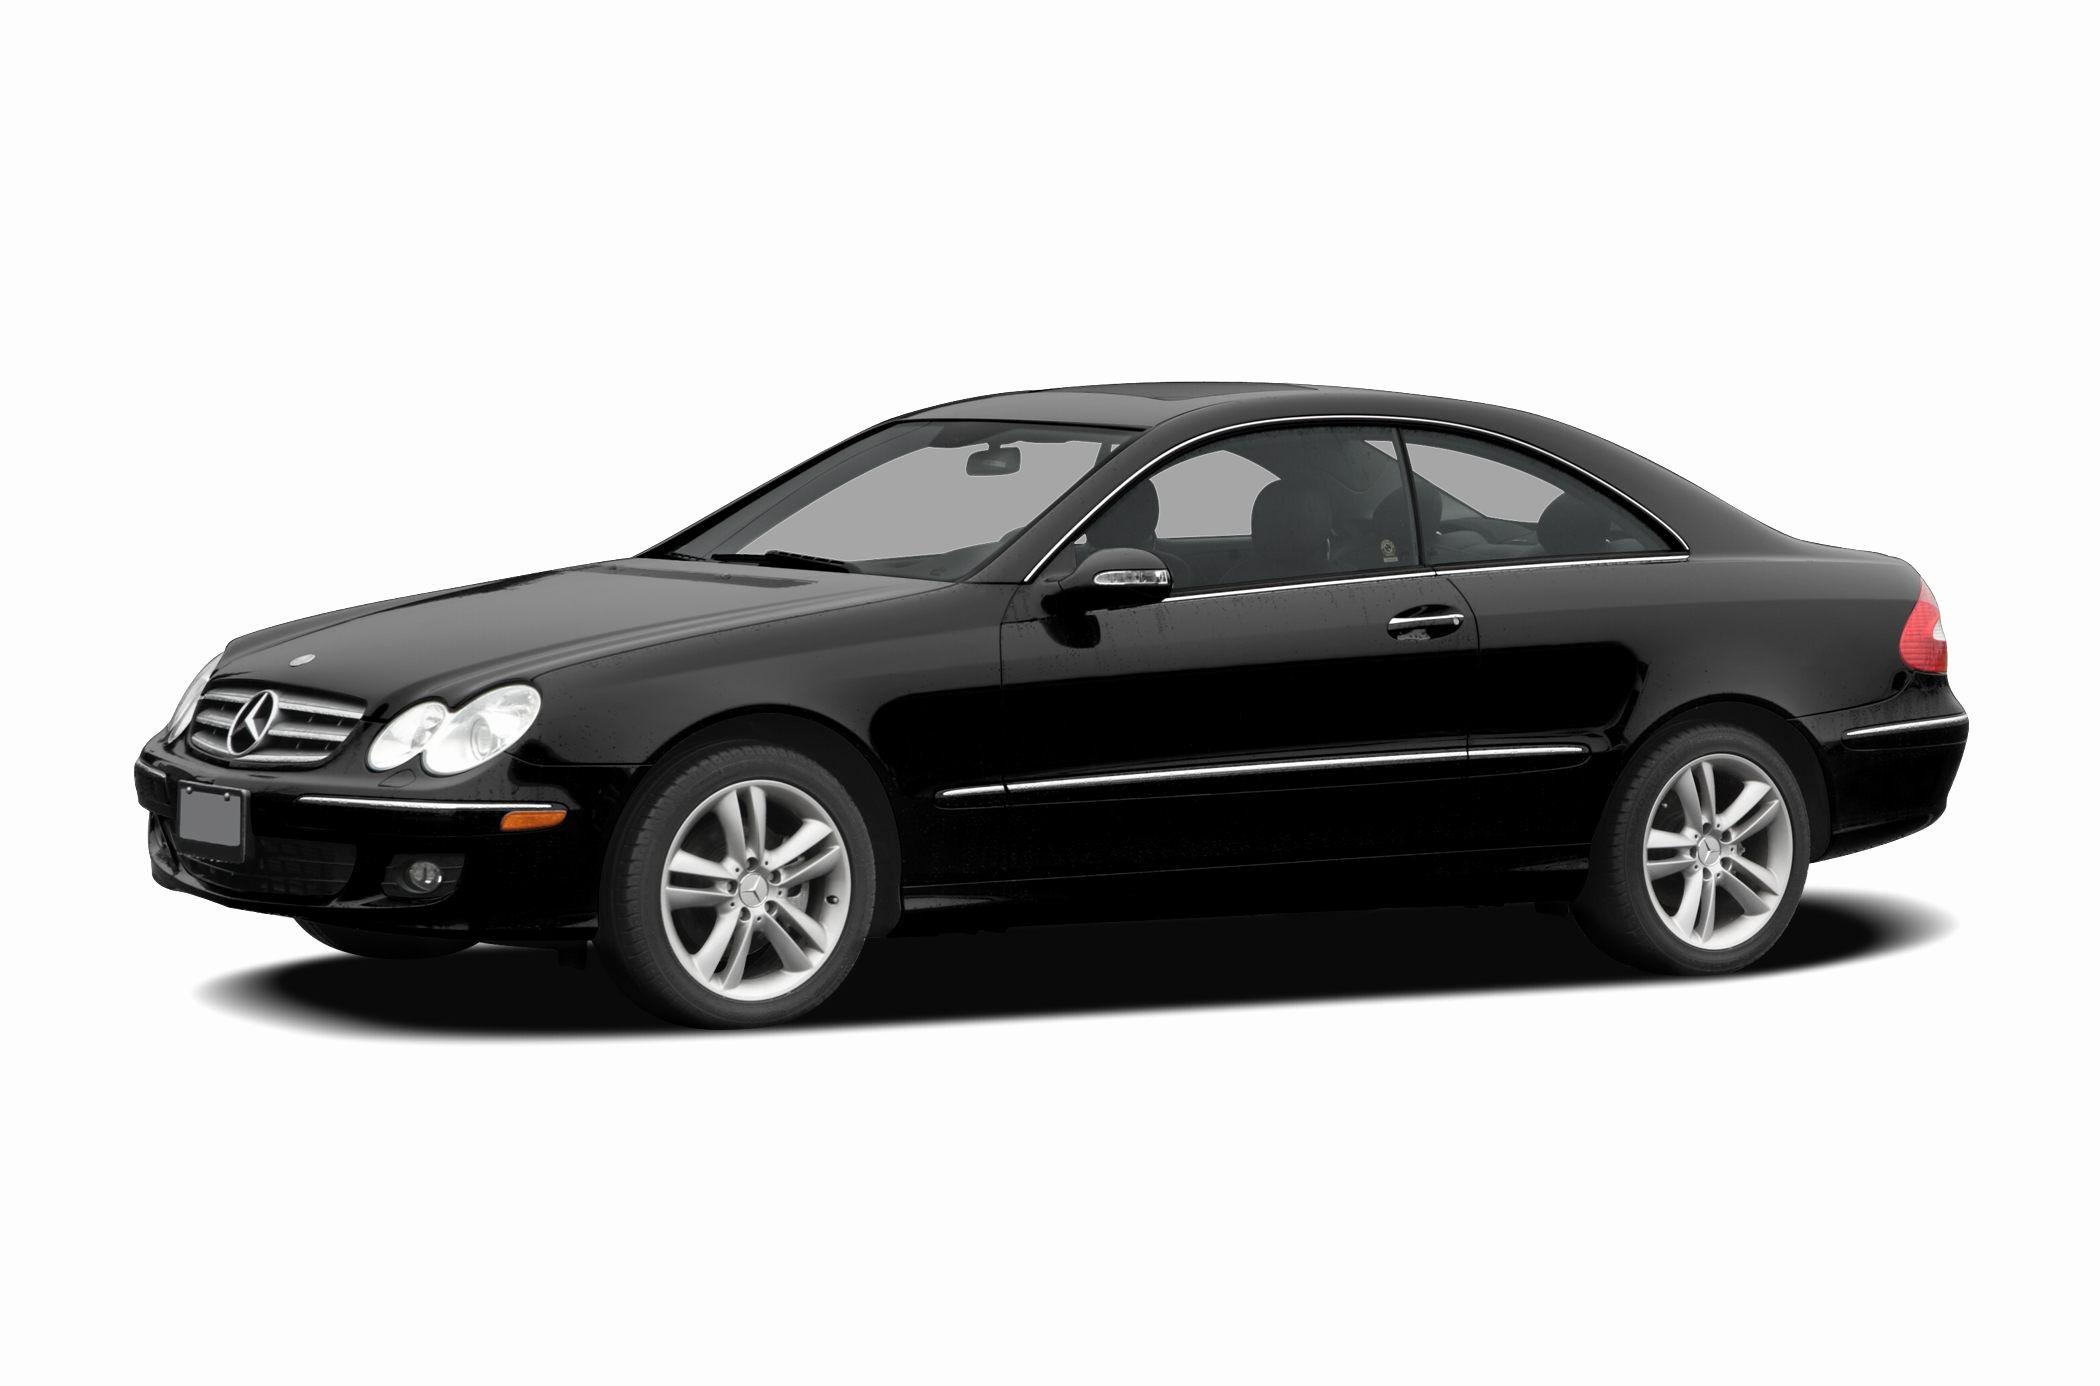 nissan dealership columbia sc elegant used cars for sale at stivers